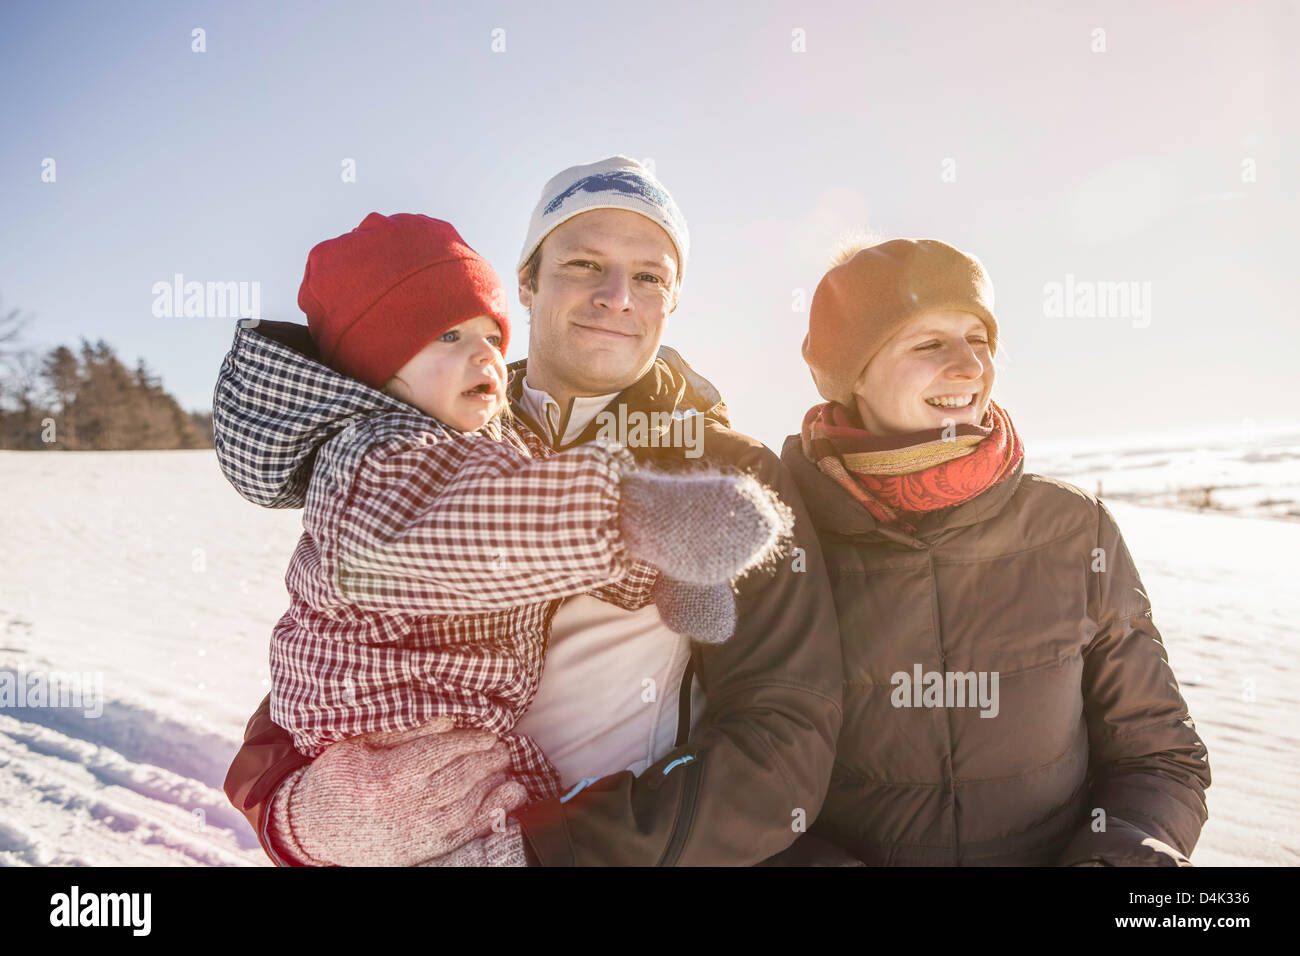 Smiling family walking in snow - Stock Image